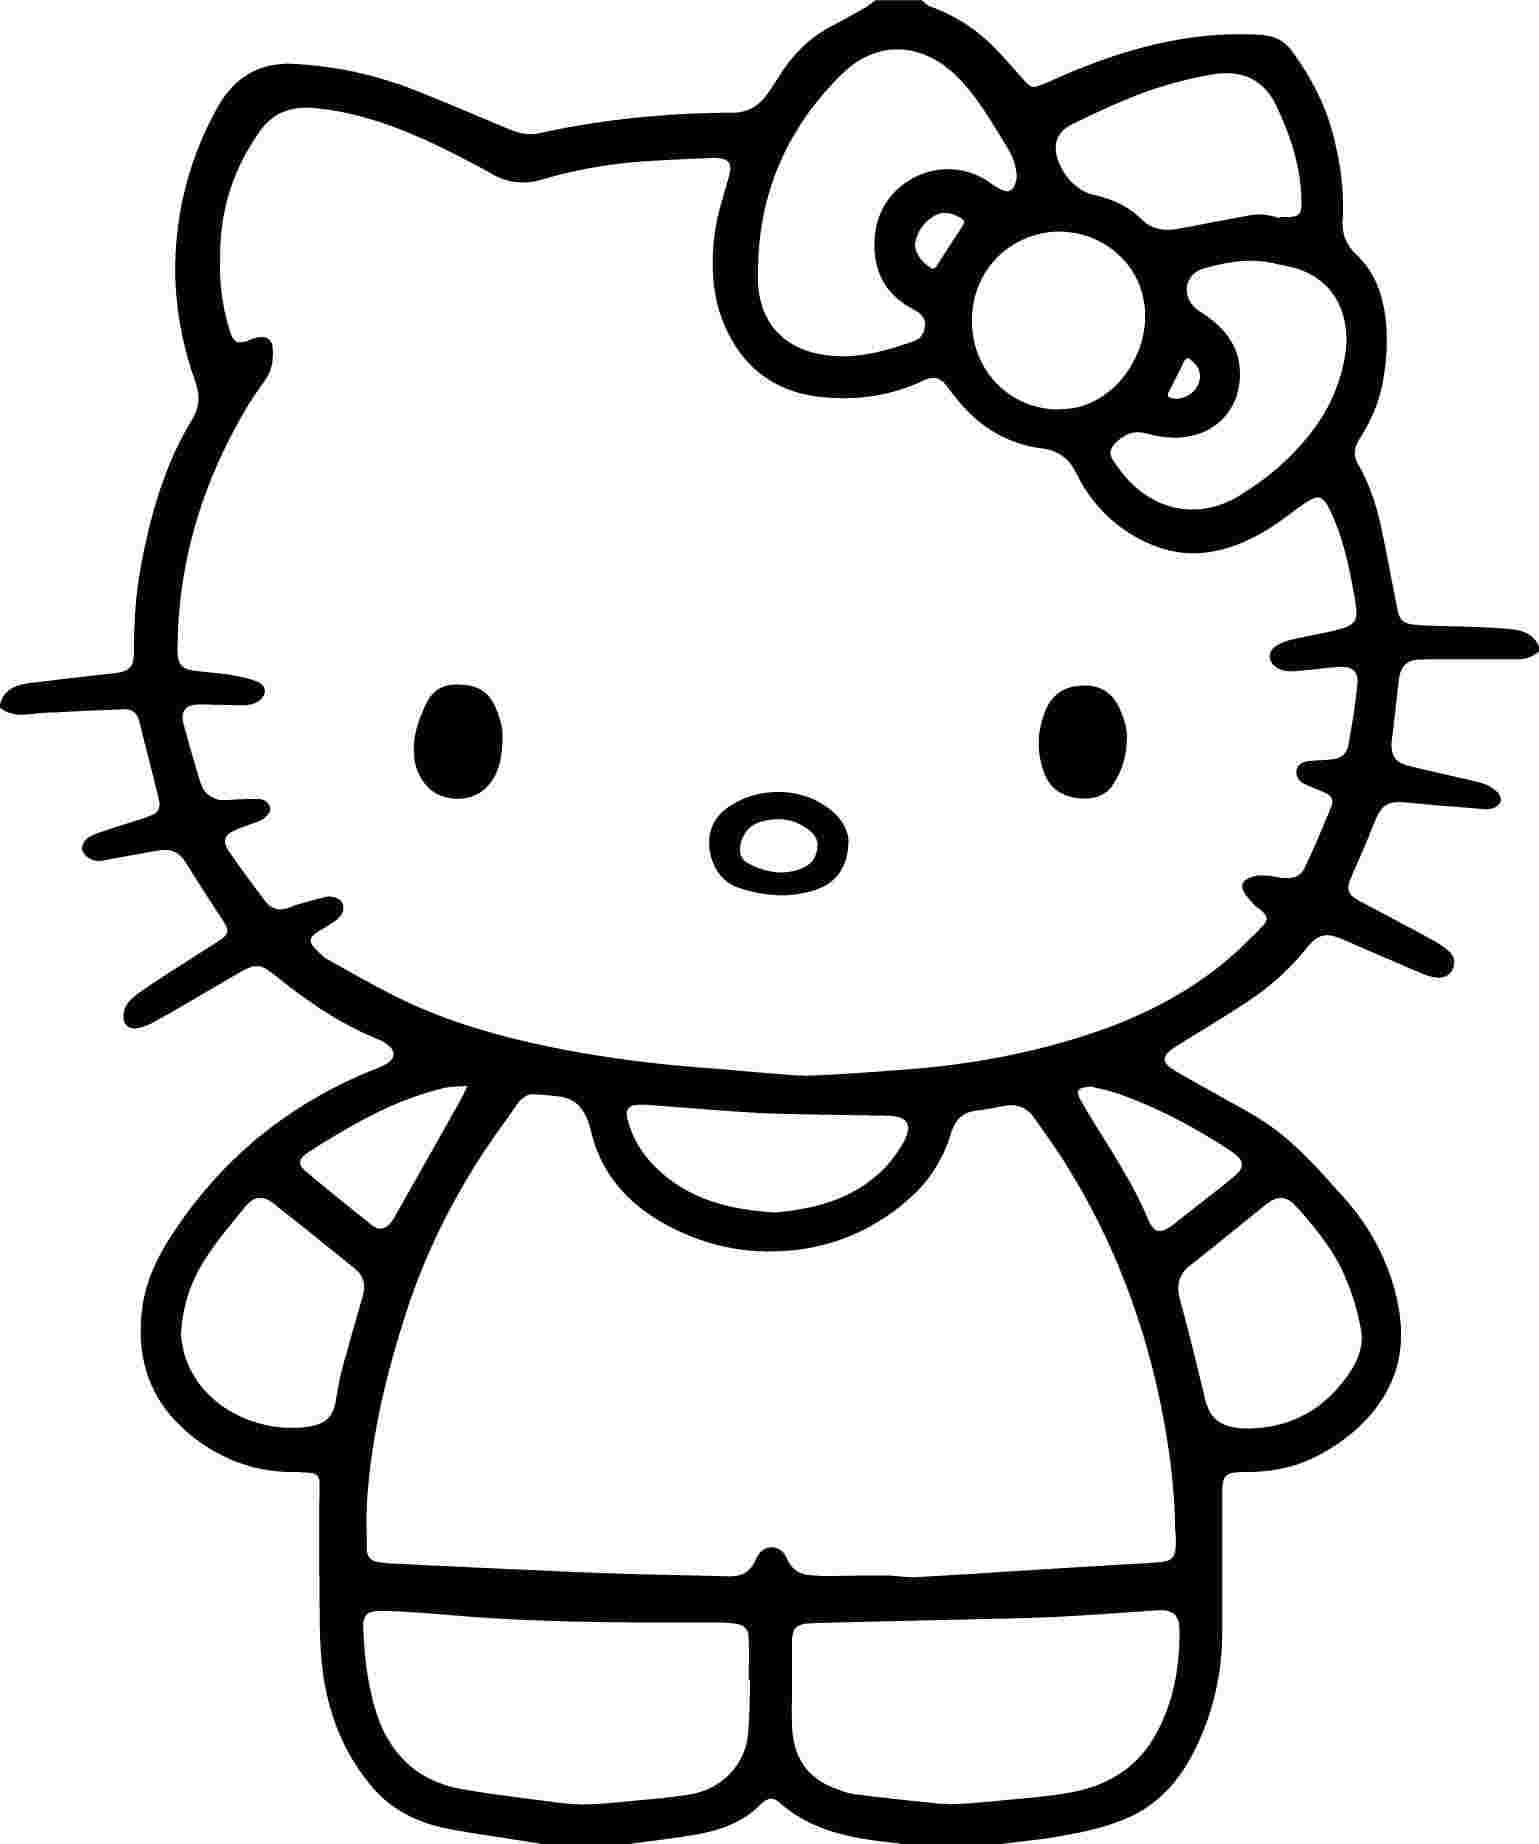 3 year old boy coloring pages coloring pages for 8 year old boys free download on boy pages 3 year coloring old